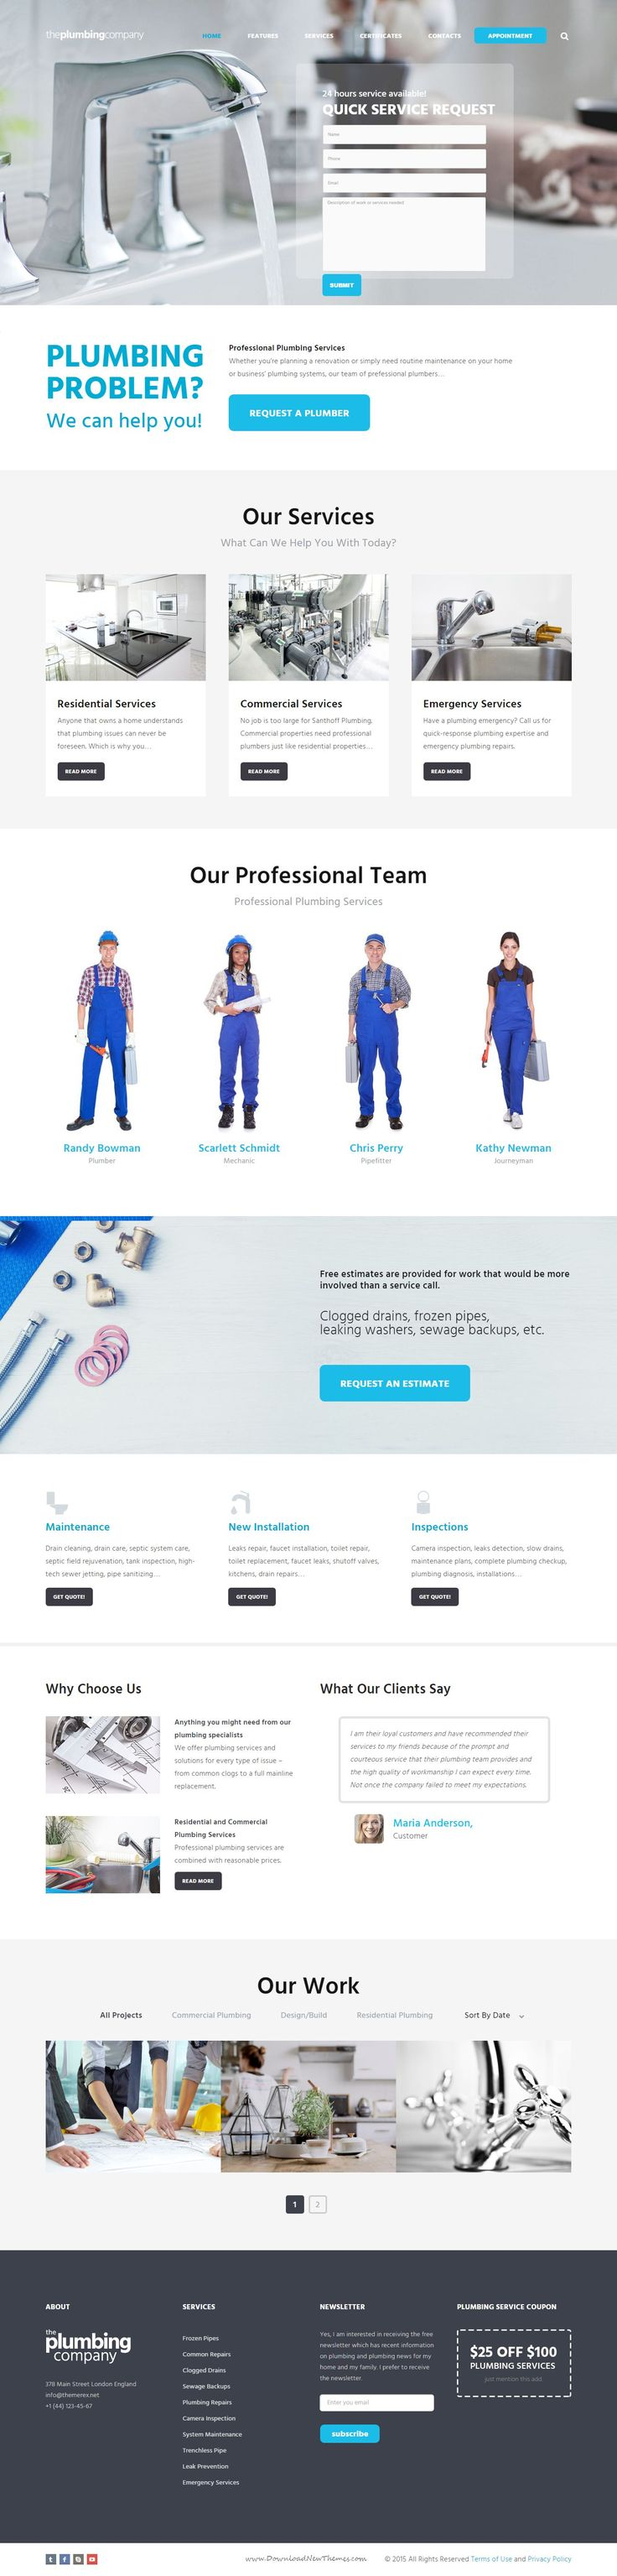 Plumbing - Repair, Building & Construction Template fits perfectly for any home #repair and #maintenance business #website: #plumbing, carpentry, remodeling & renovation, construction business, etc.